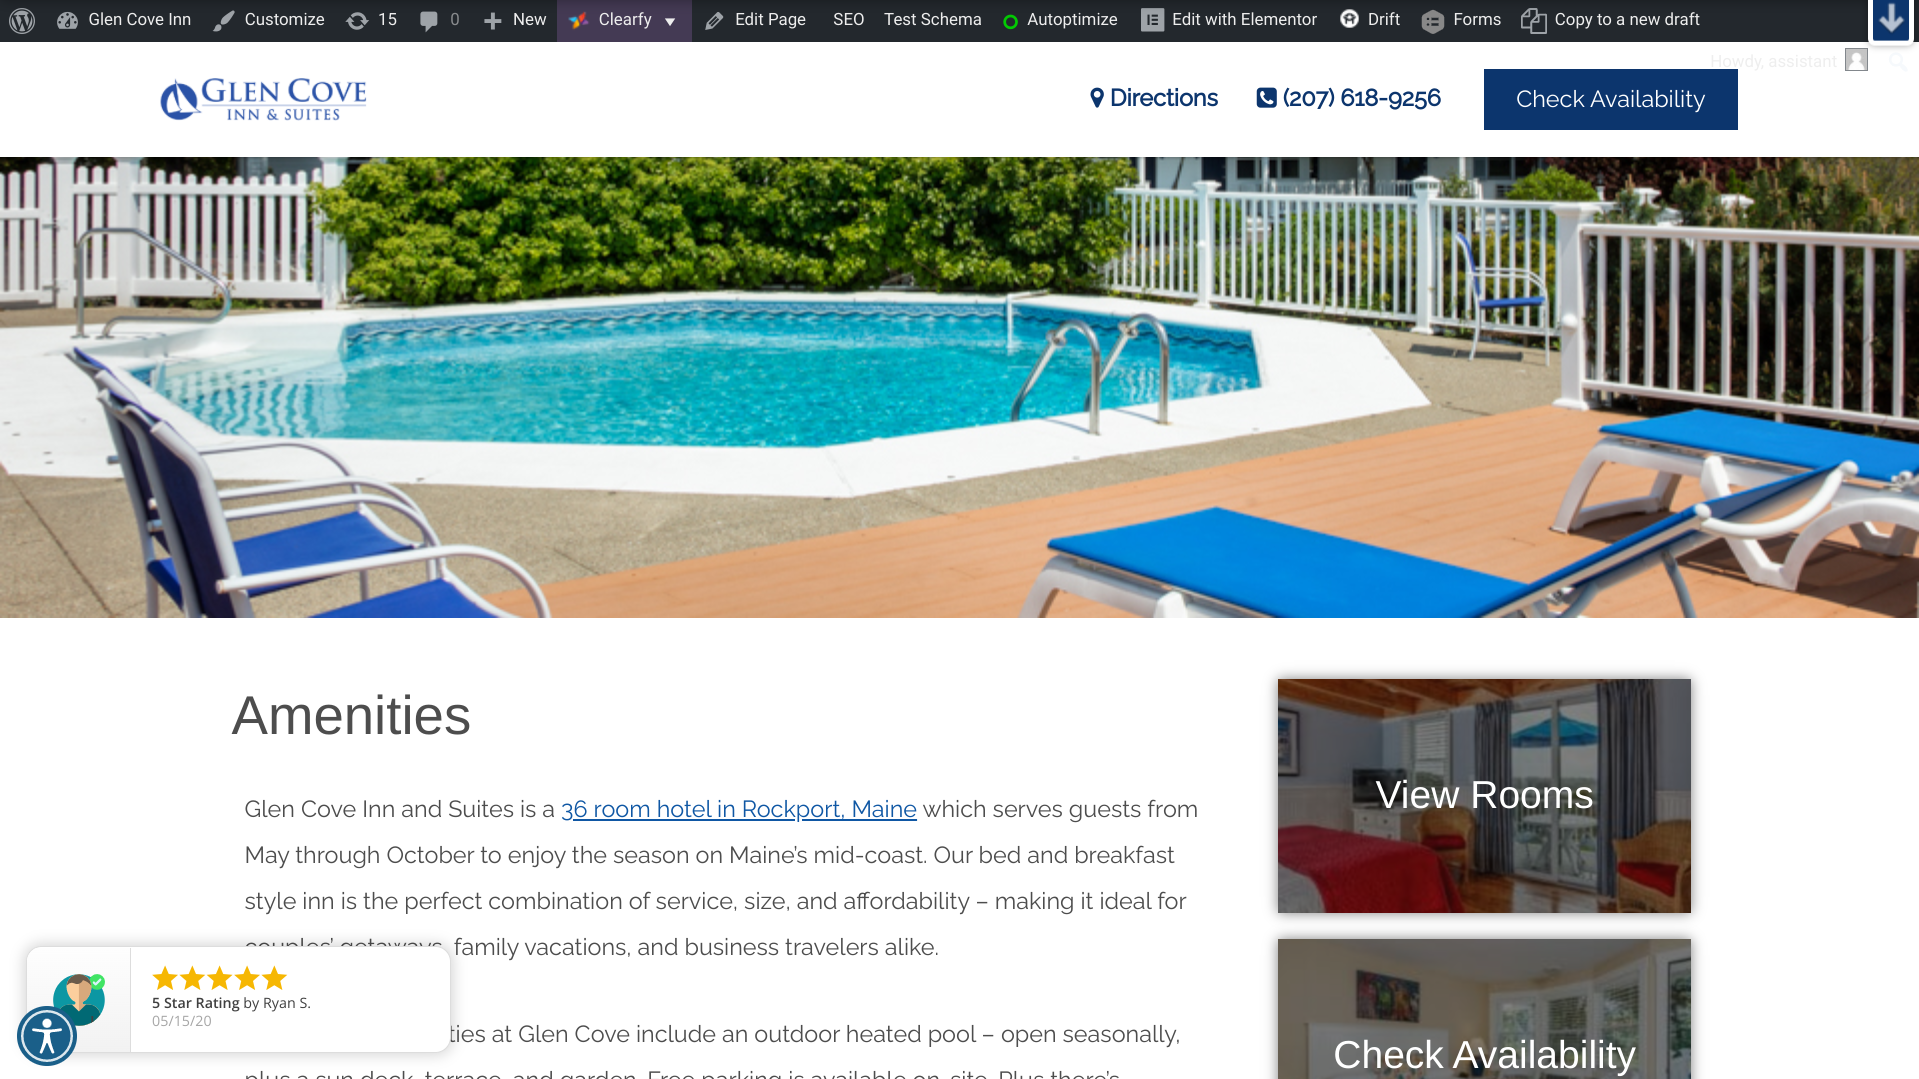 example of website pop-up for feature recent reviews in boutique lodging property marketing